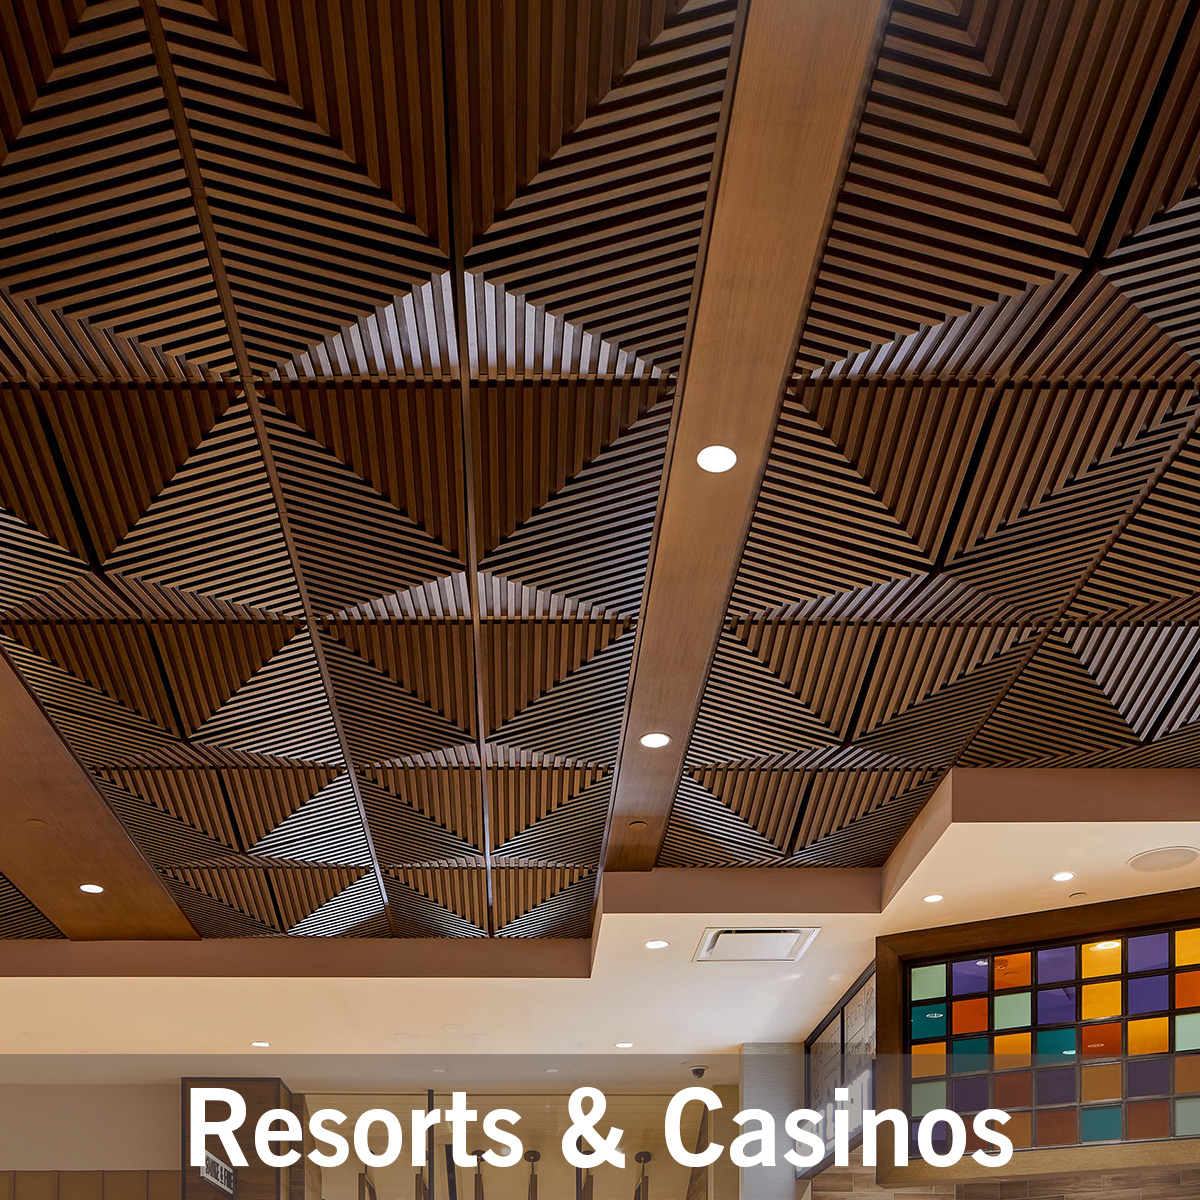 Resorts & Casinos